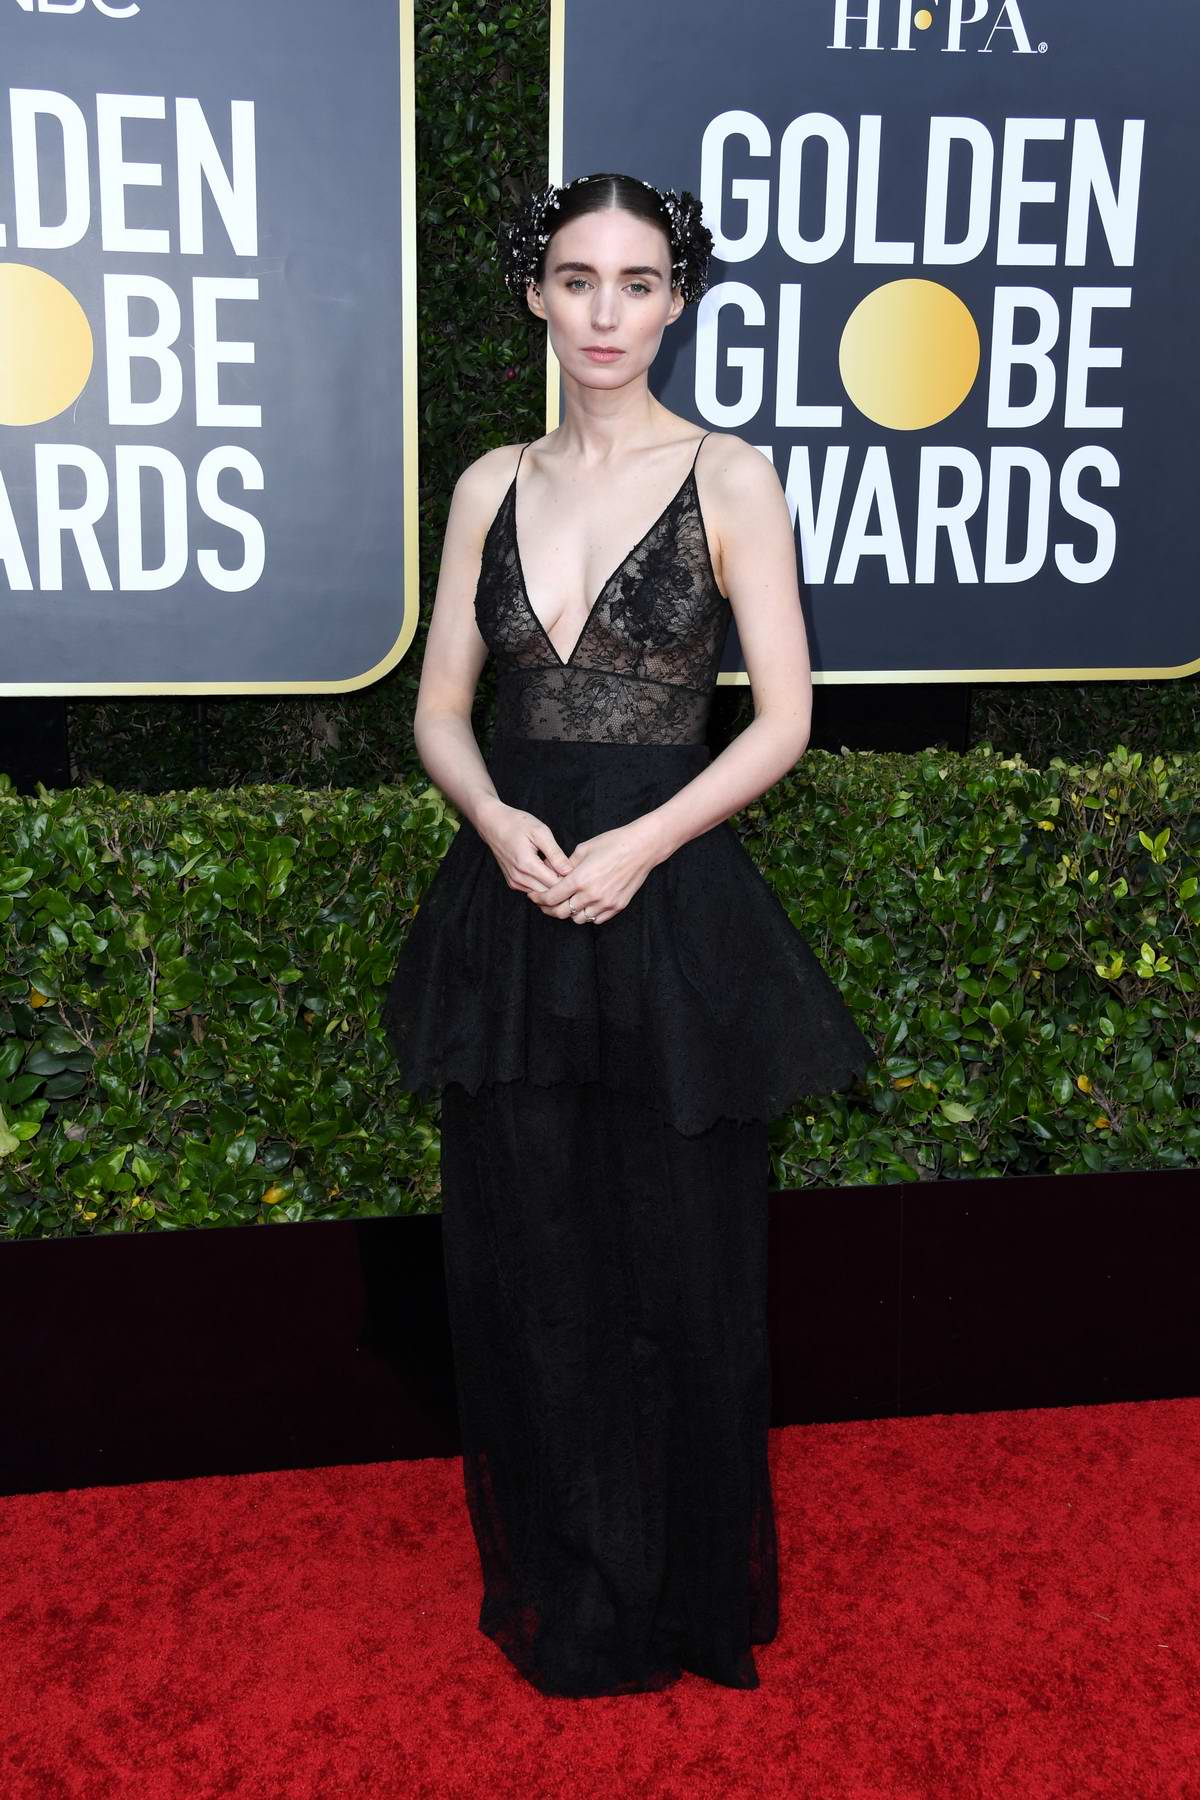 Rooney Mara attends the 77th Annual Golden Globe Awards at The Beverly Hilton Hotel in Beverly Hills, California